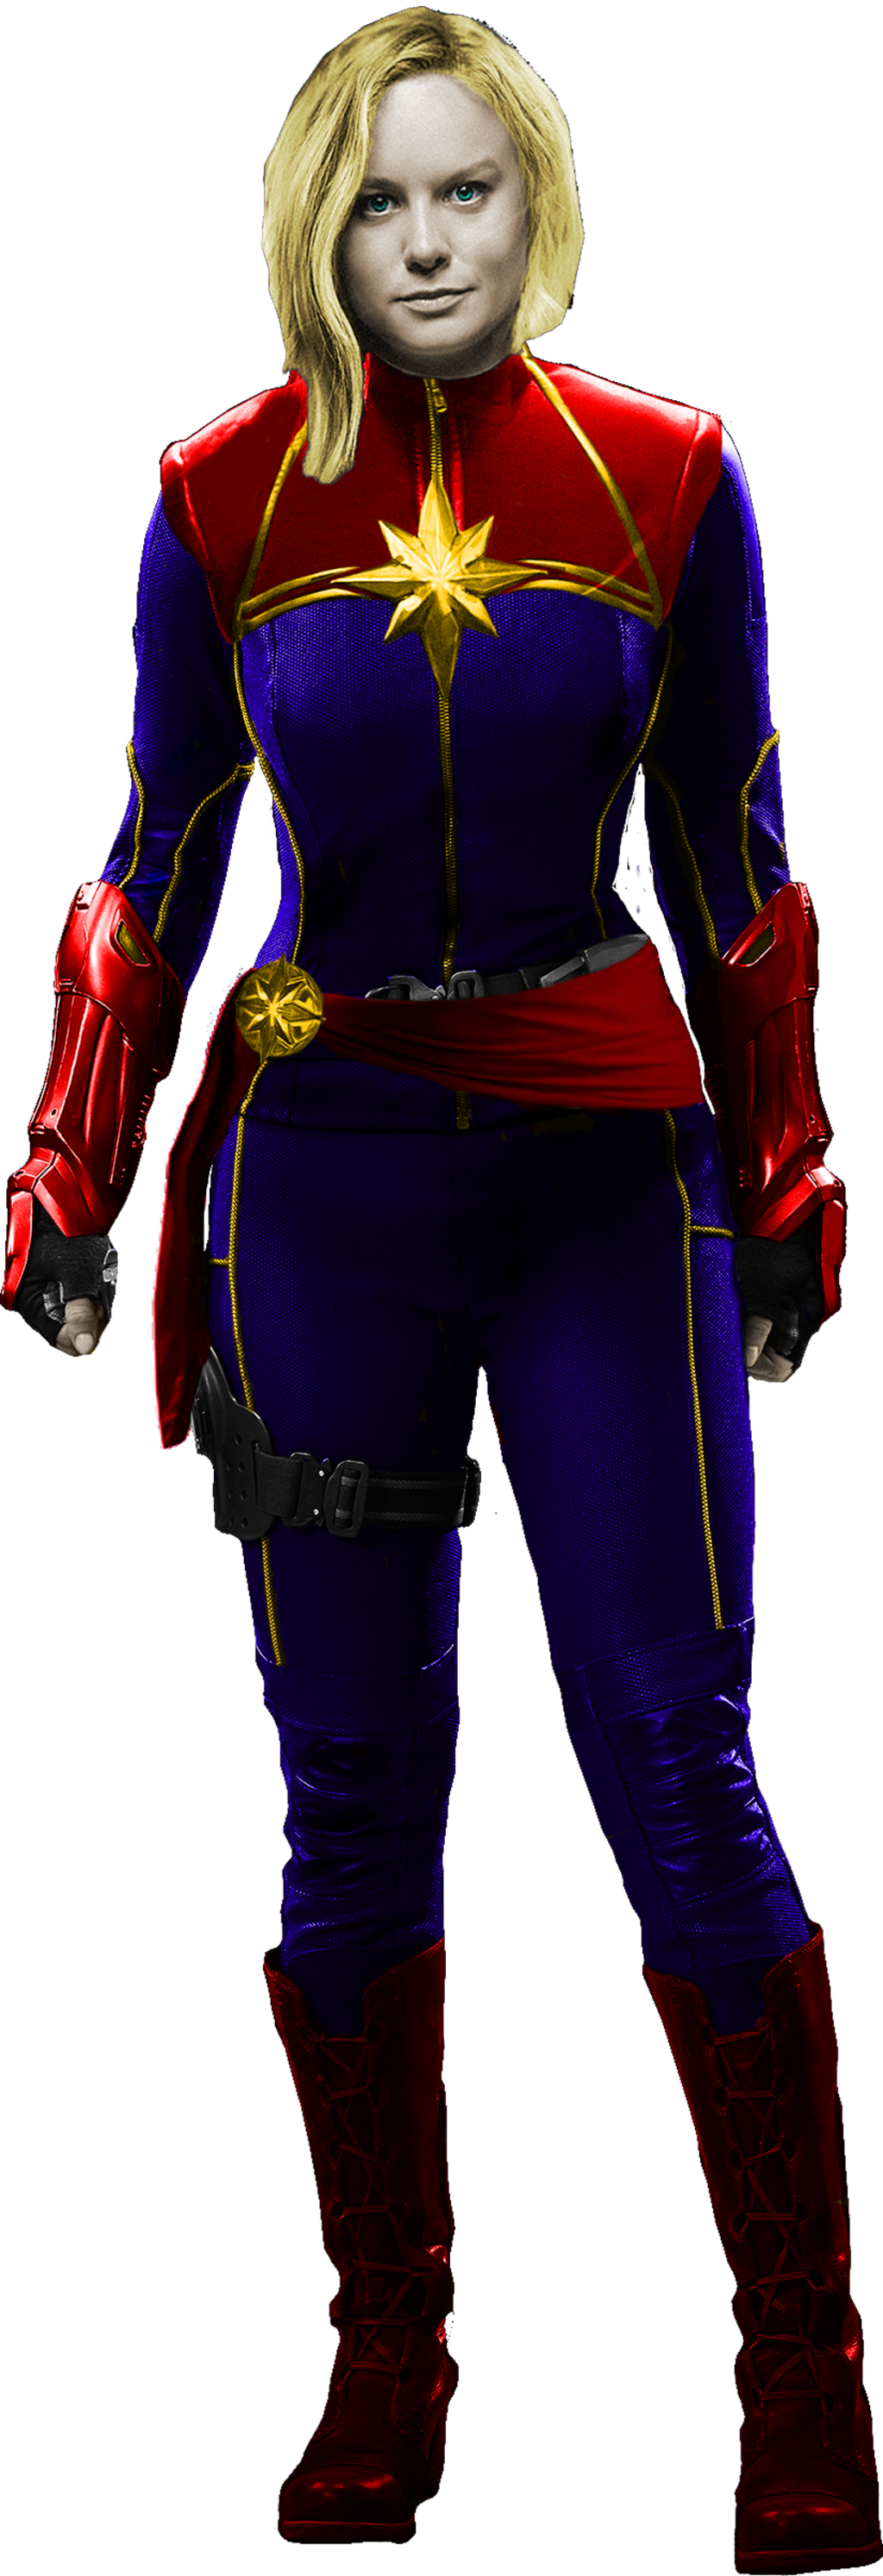 Captain marvel png. Image result for reference